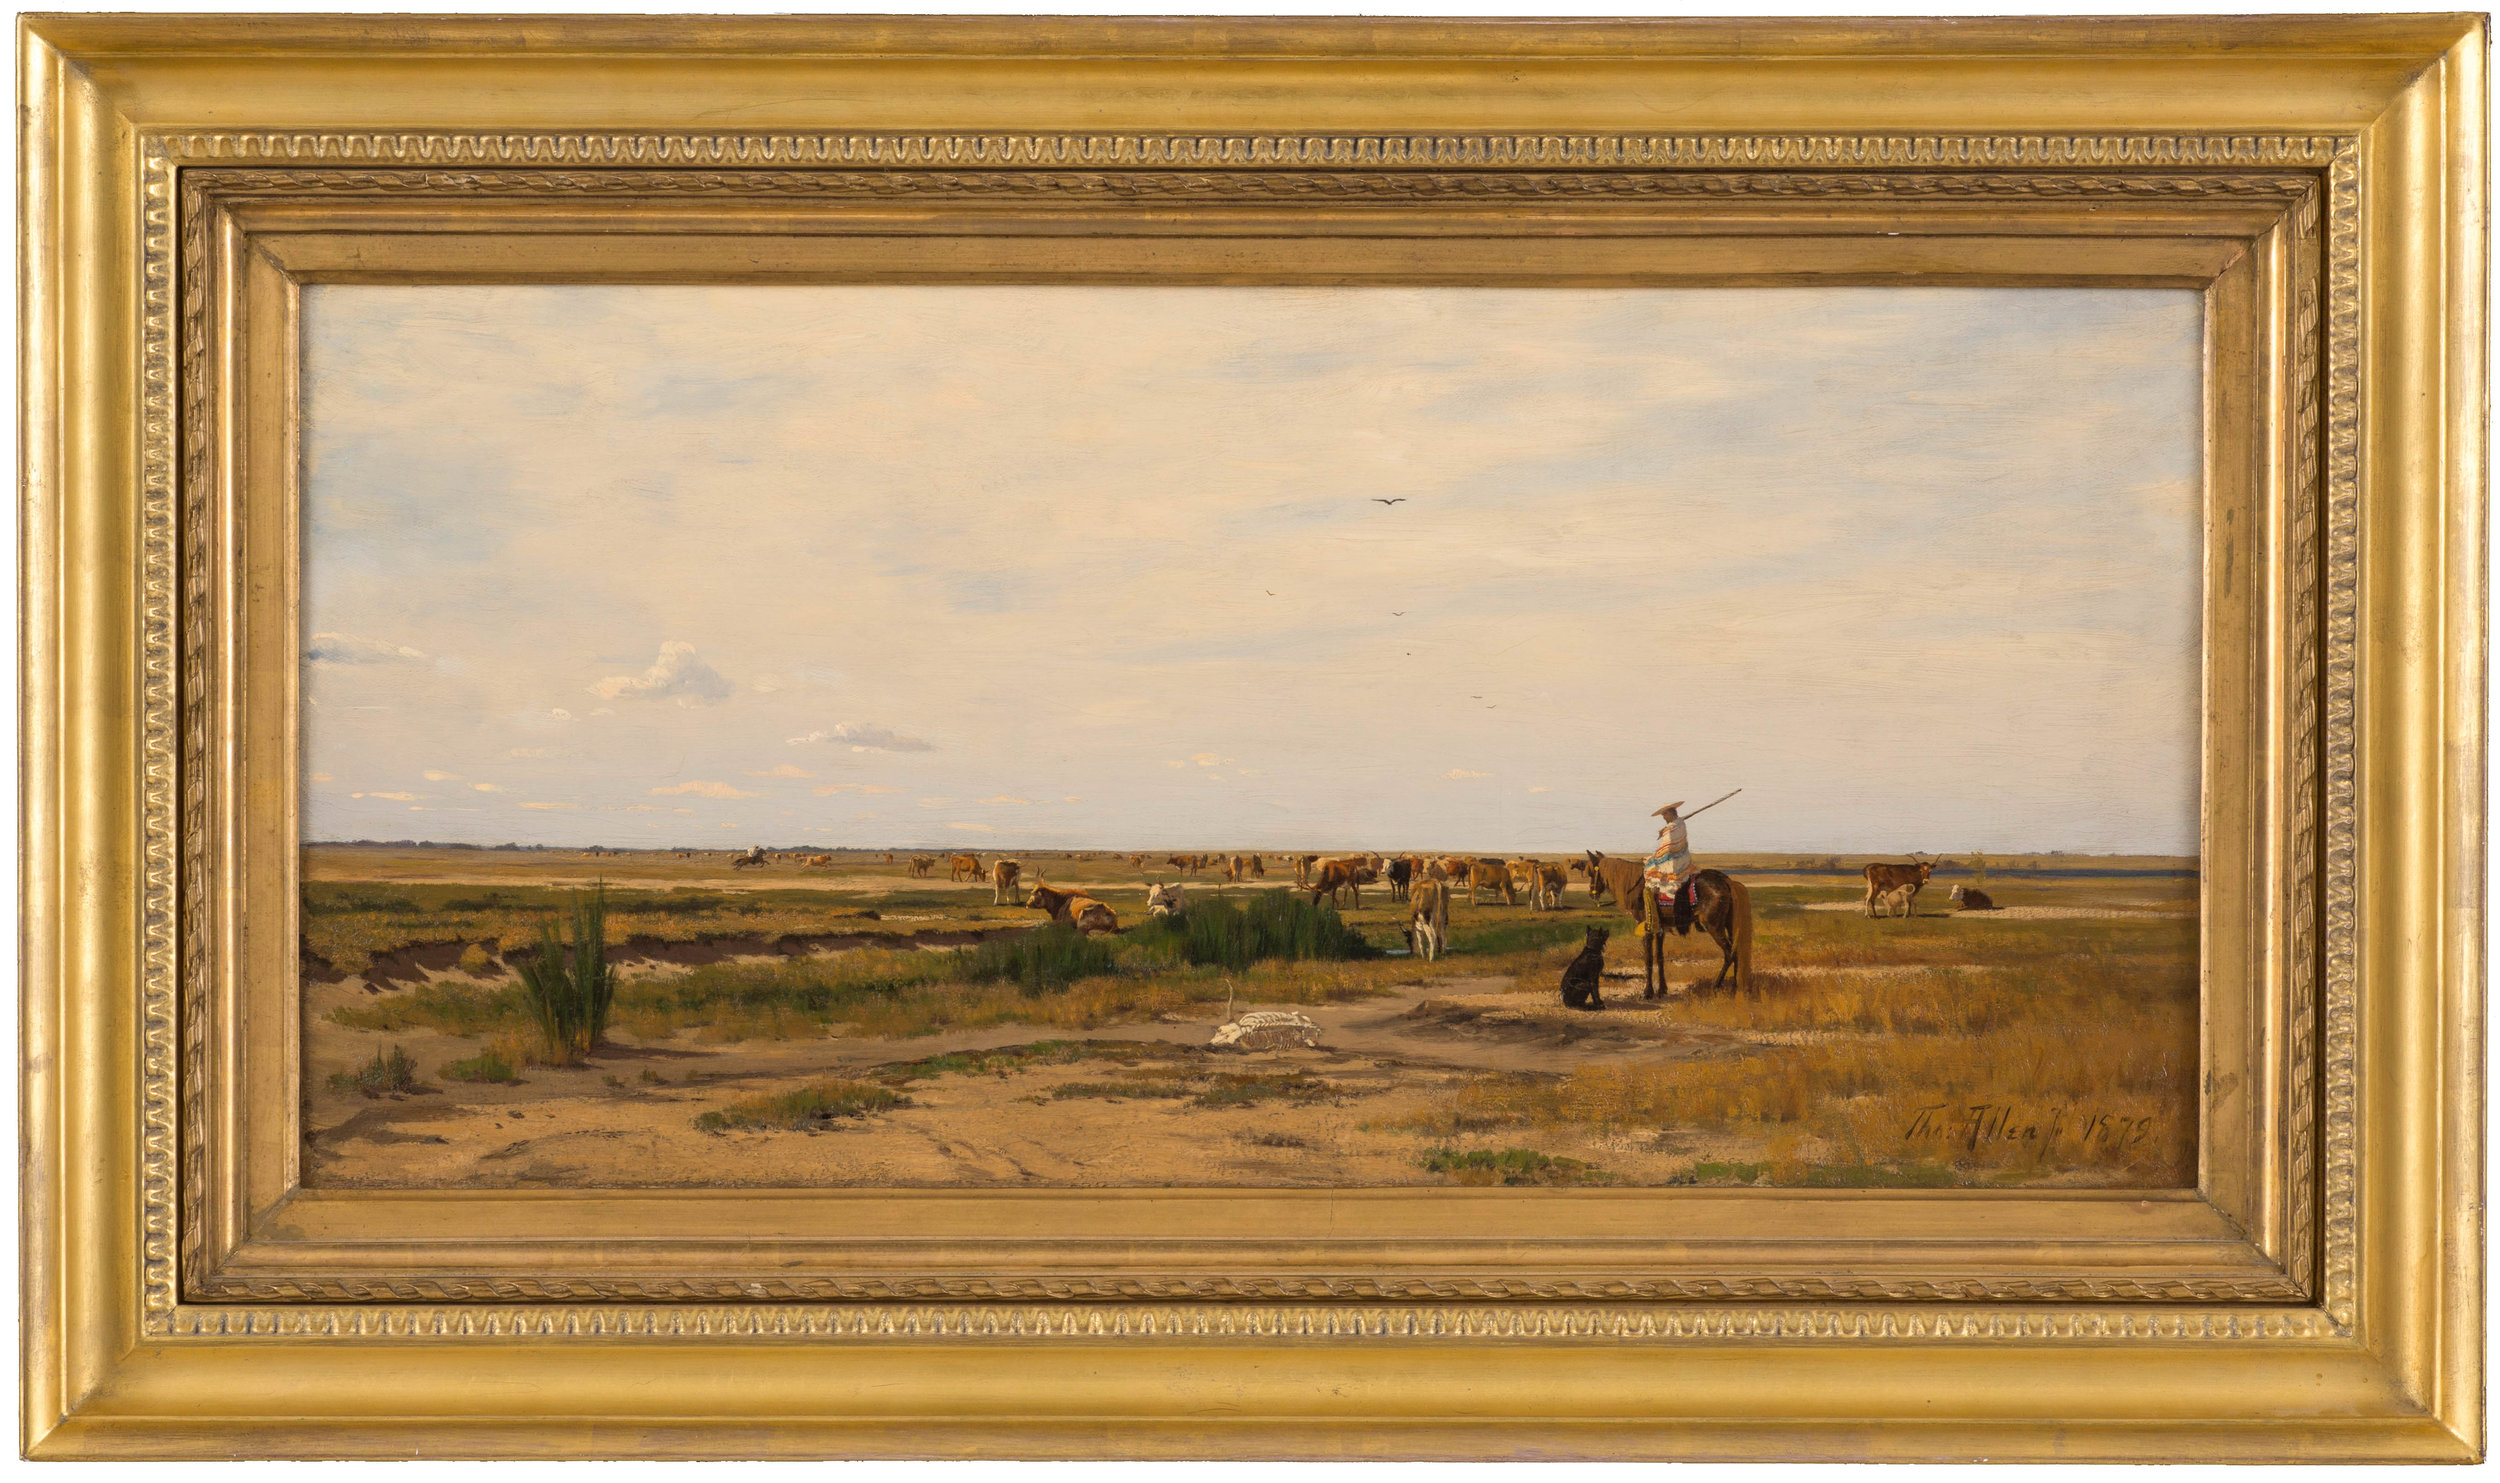 A Prairie Scene with Mexican Herdsmen and Cattle, 1879, by Thomas Allen.